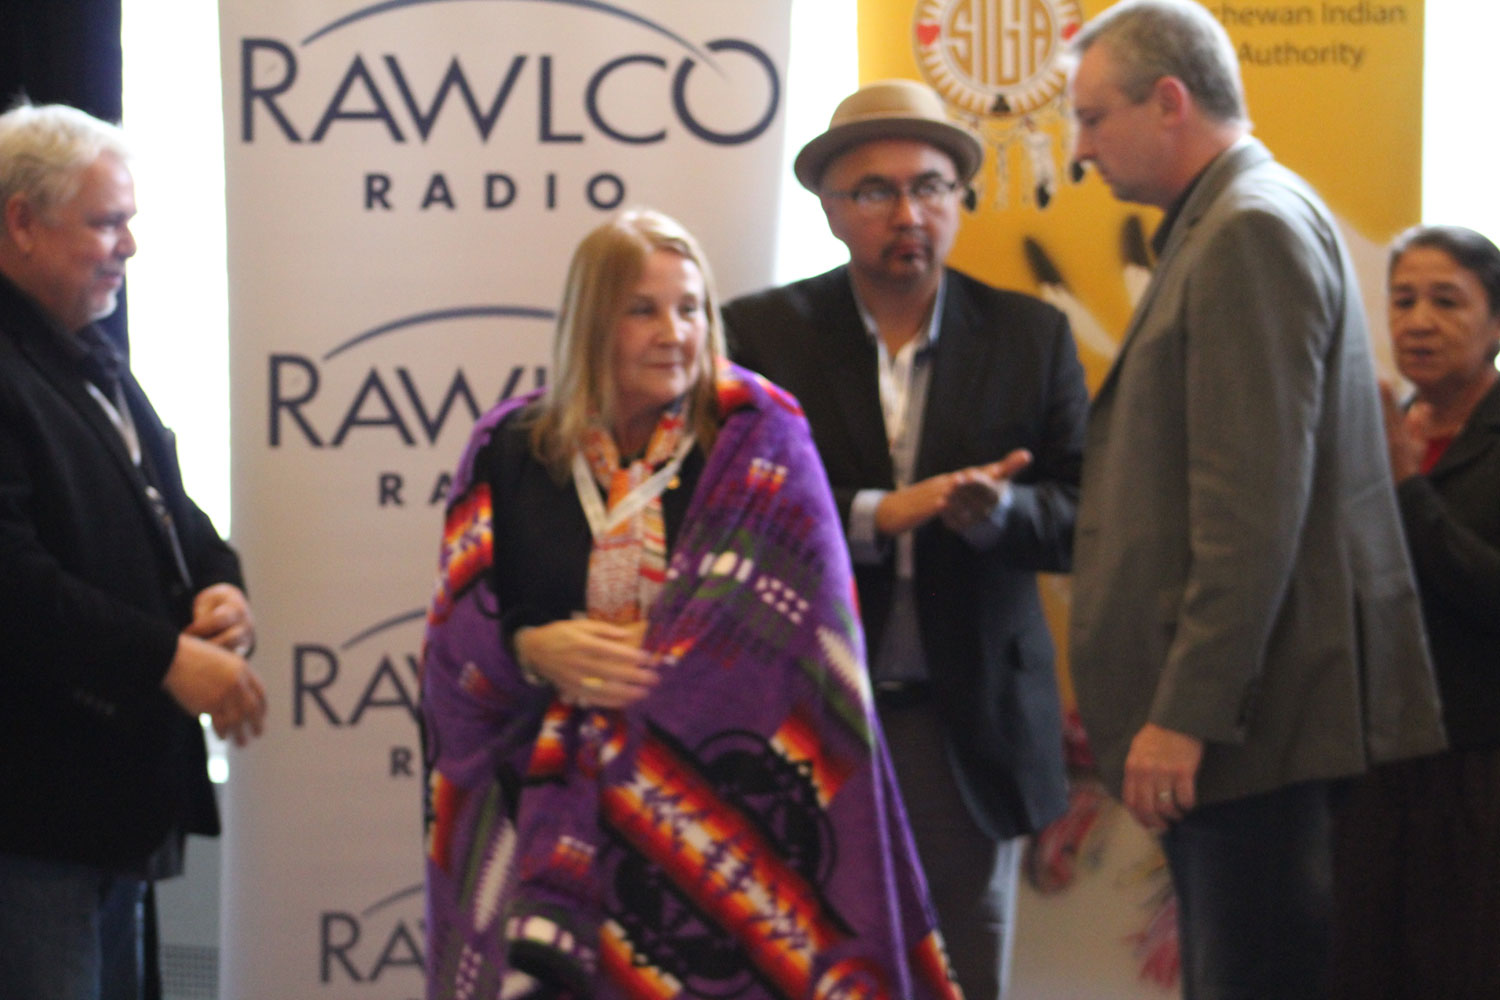 Marie Wilson was honoured with a blanket by the conference committee.